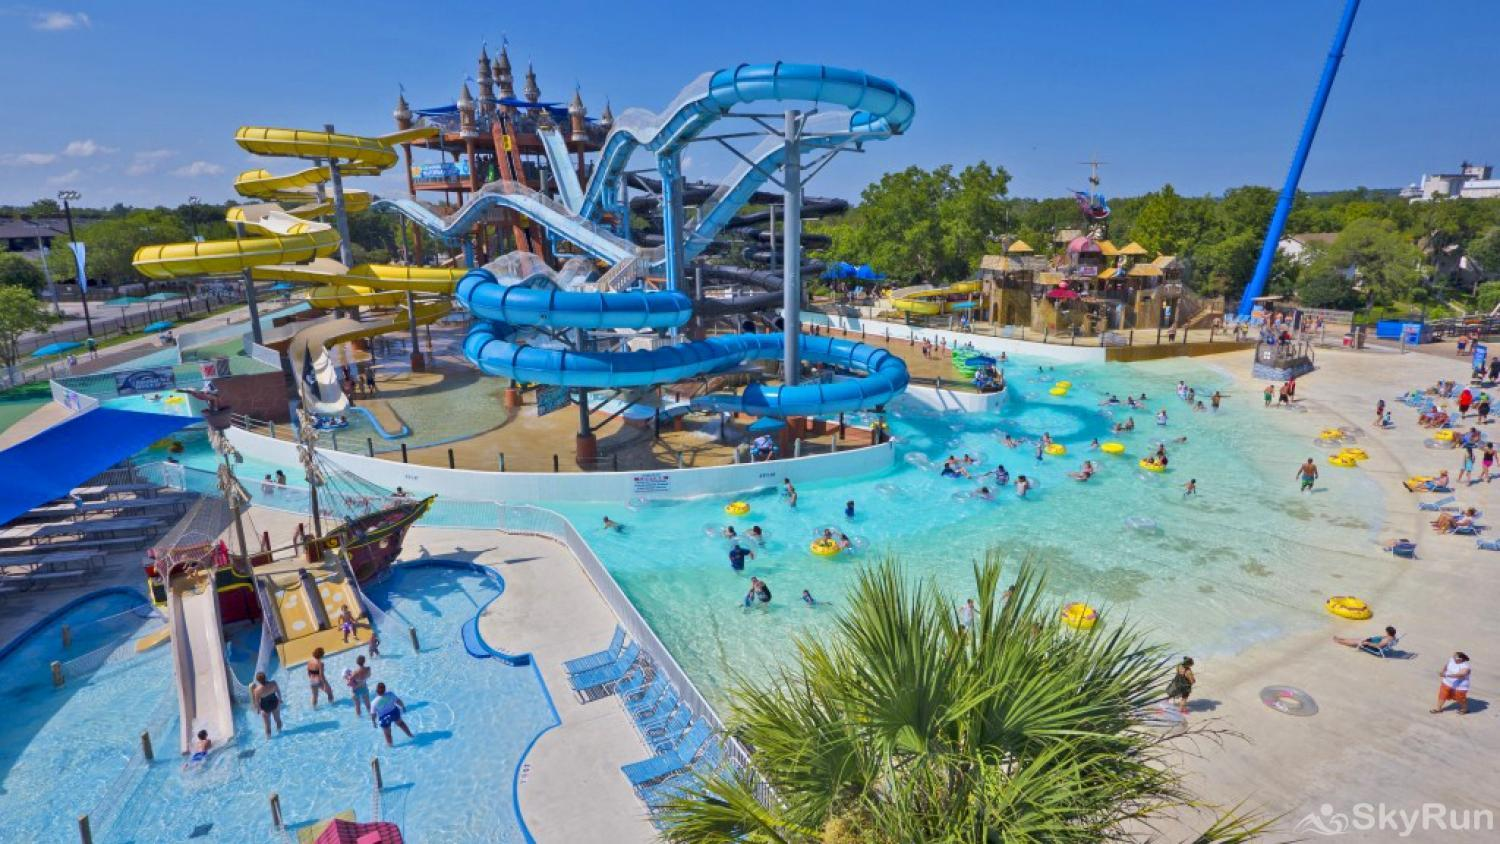 WATER'S EDGE RETREAT Schlitterbahn Waterpark, 20 minutes away